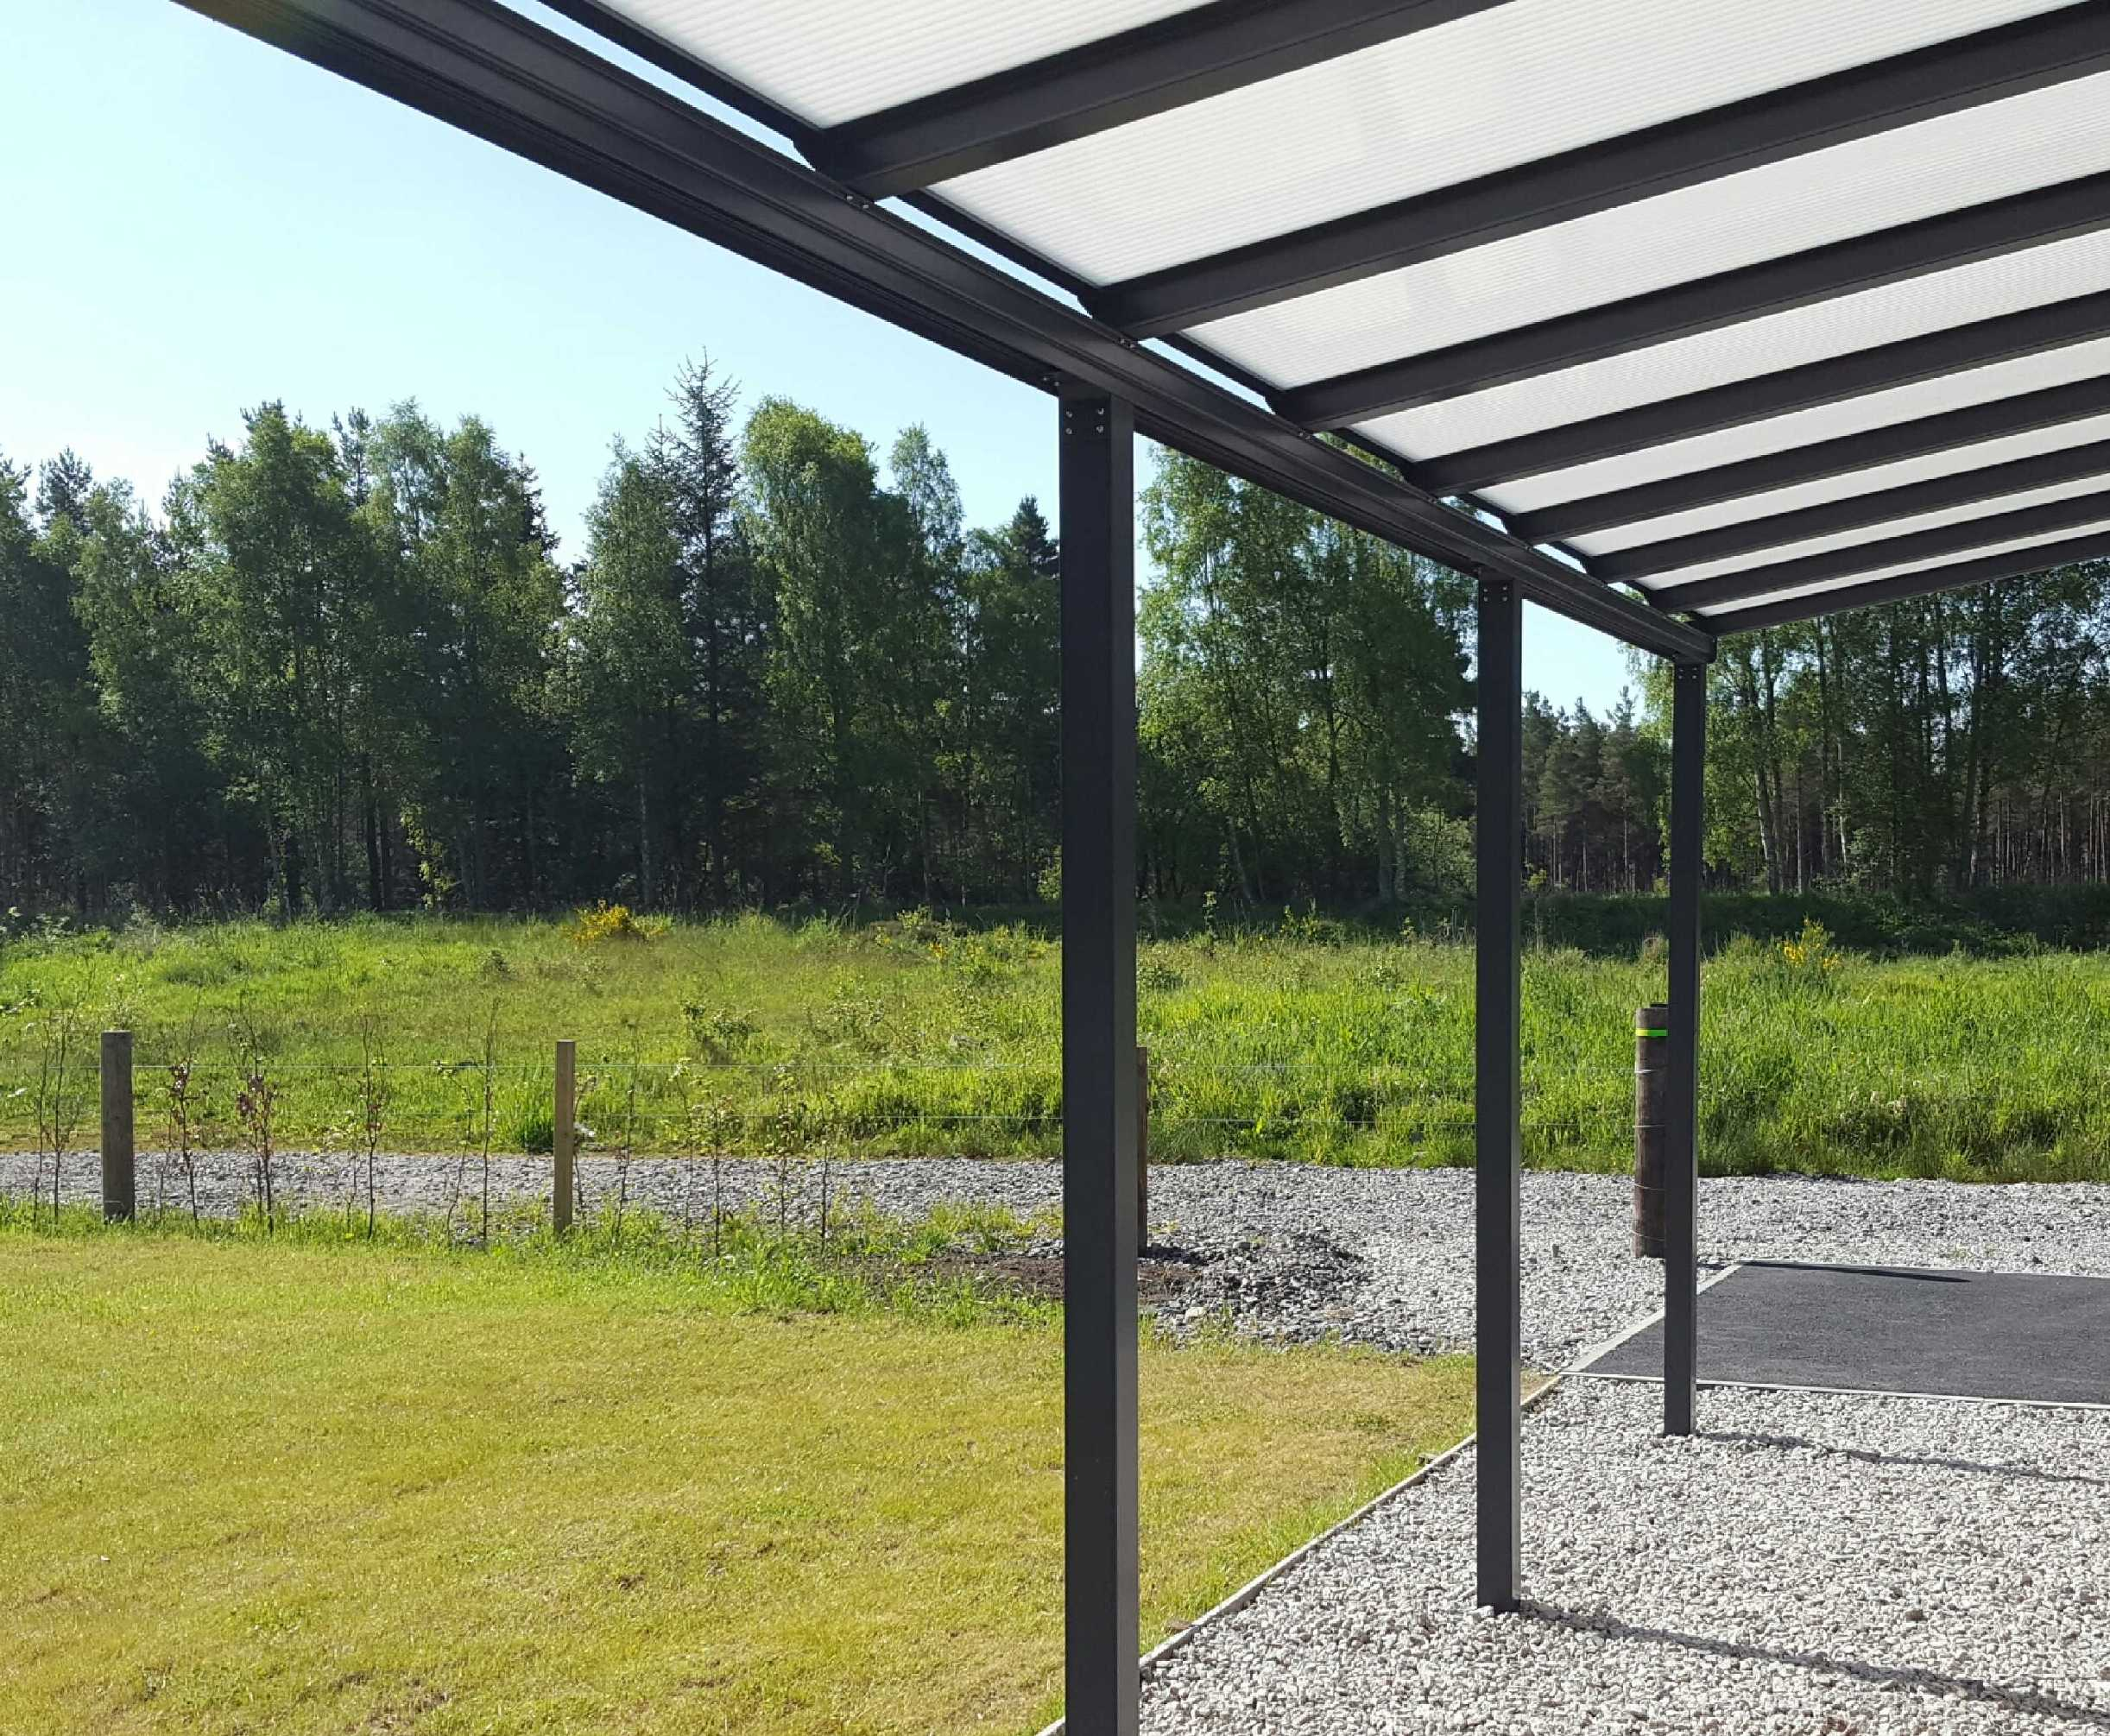 Omega Smart Lean-To Canopy, Anthracite Grey, 16mm Polycarbonate Glazing - 5.2m (W) x 2.0m (P), (3) Supporting Posts